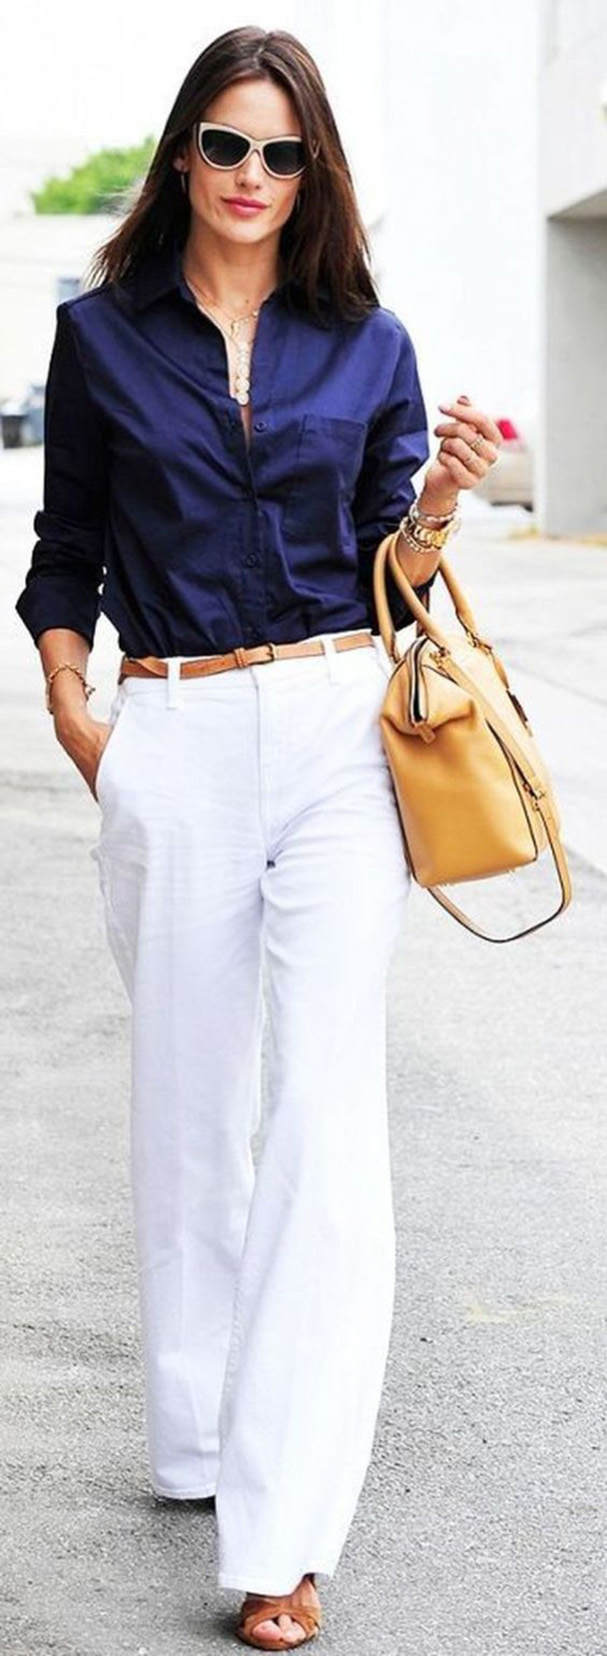 15 summer looks for the office Look 9